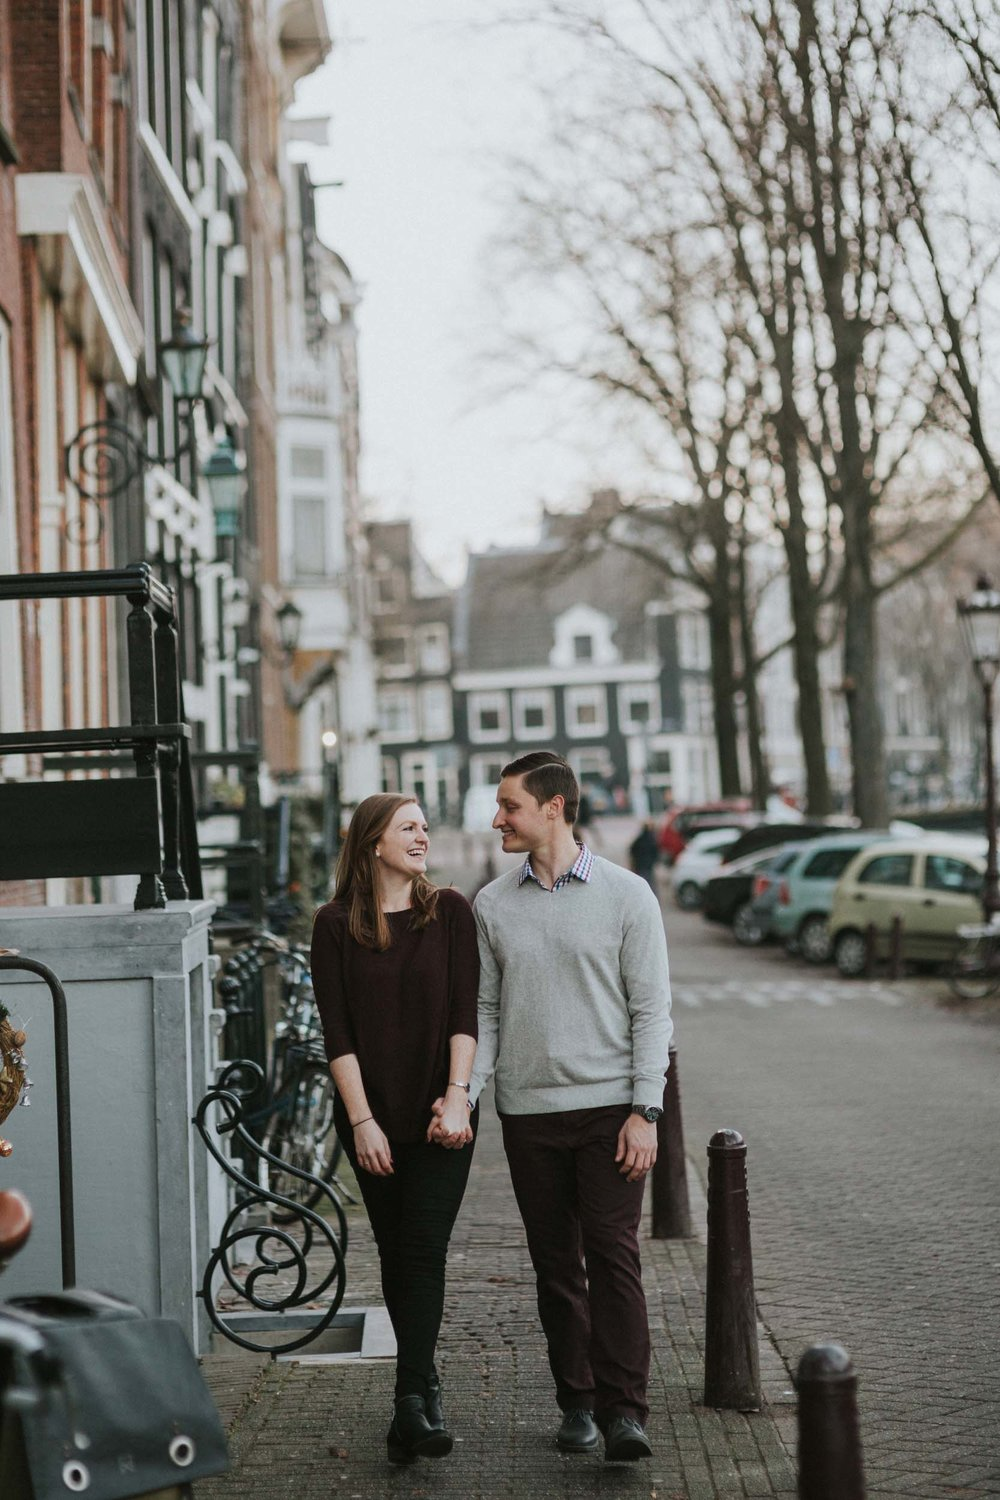 Click to see more of this couple's romantic proposal on the canals of Amsterdam on the Flytographer blog! | Travel + Vacation Photographer | Family Vacations | Engagement Proposals | Honeymoons | Anniversary Gifts | Bachelorette Ideas | Solo Traveller Tips |  Flytographer captures your travel memories - everything from surprise proposals, honeymoons, family vacations, and more. So often you are missing out of your own photos! Flytographer solves that problem for you. Our photographers also act as informal tour guides and provide fun local tips to our customers, showing them an area of a city they may not have explored without Flytographer. Book your photographer at 1.888.211.7178 or visit our website at www.flytographer.com/book